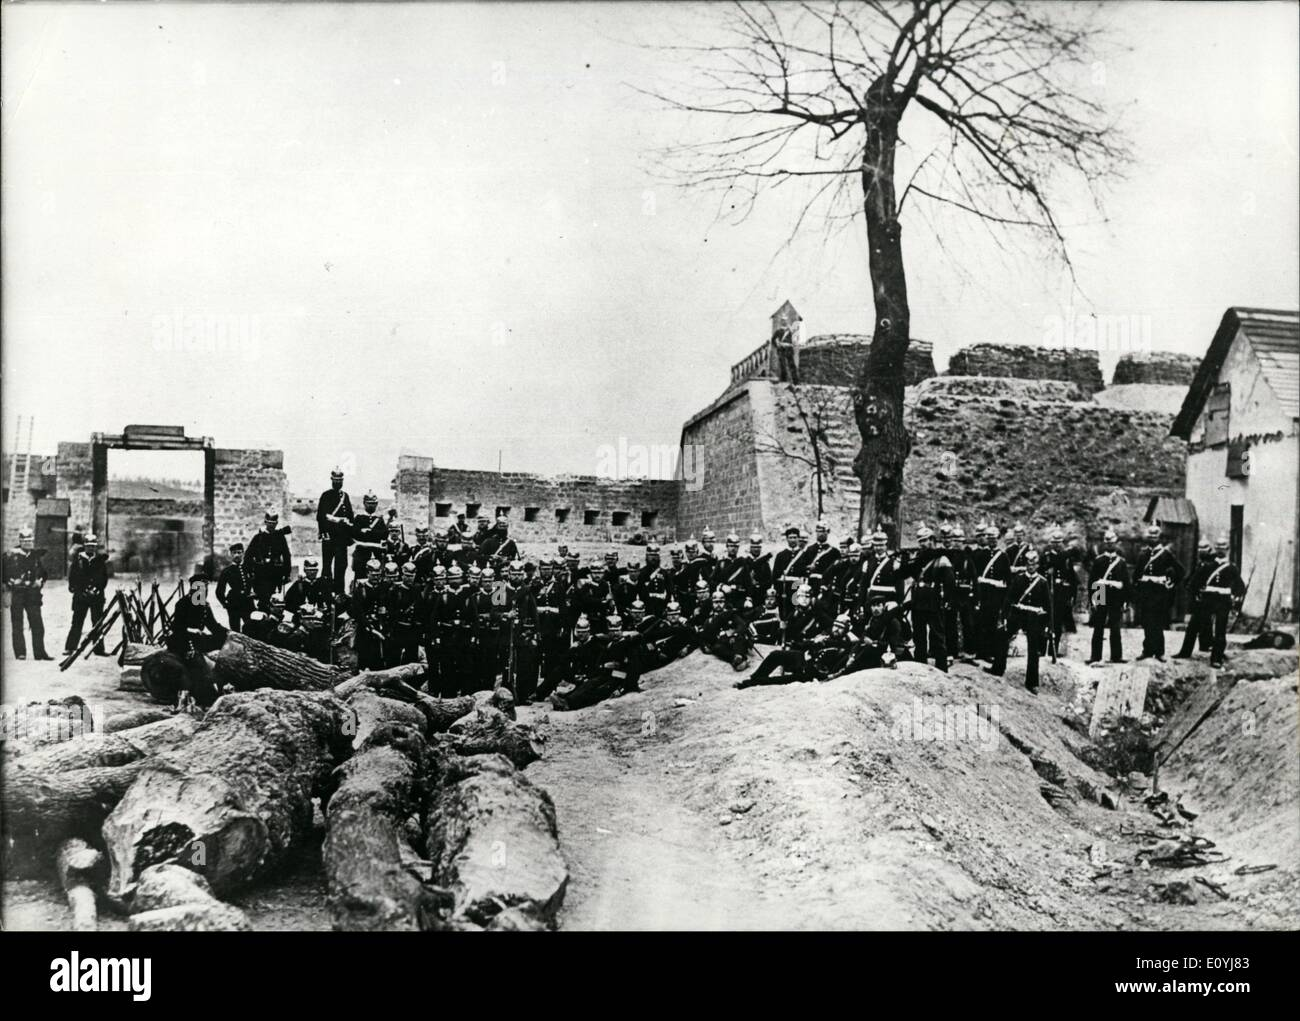 Jul. 07, 1970 - Franco-German War: On July 9th, 1870, France declared war to Prussia. The France Photo shows. Prussian artillery in St. Denis/ Fort Double Couronne. - Stock Image